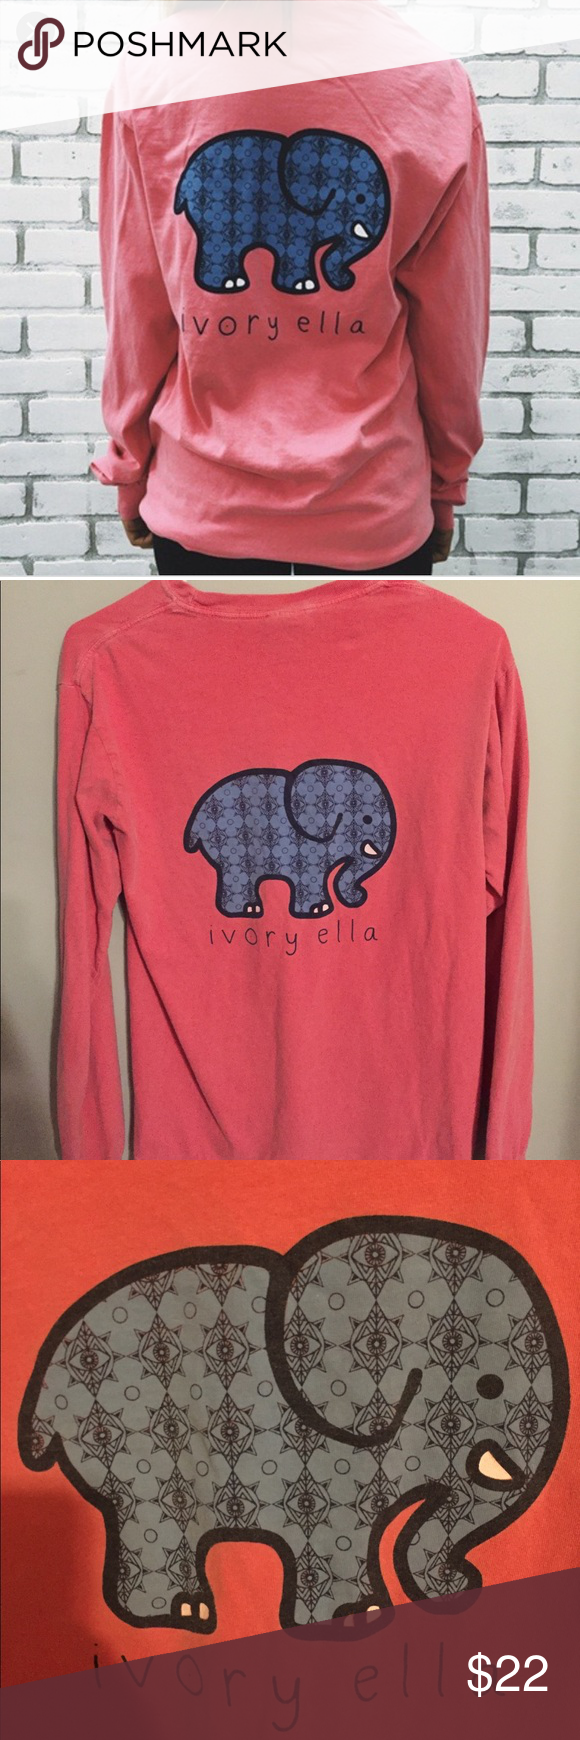 02292ed15 Ivory Ella Shirts Prices – Rockwall Auction